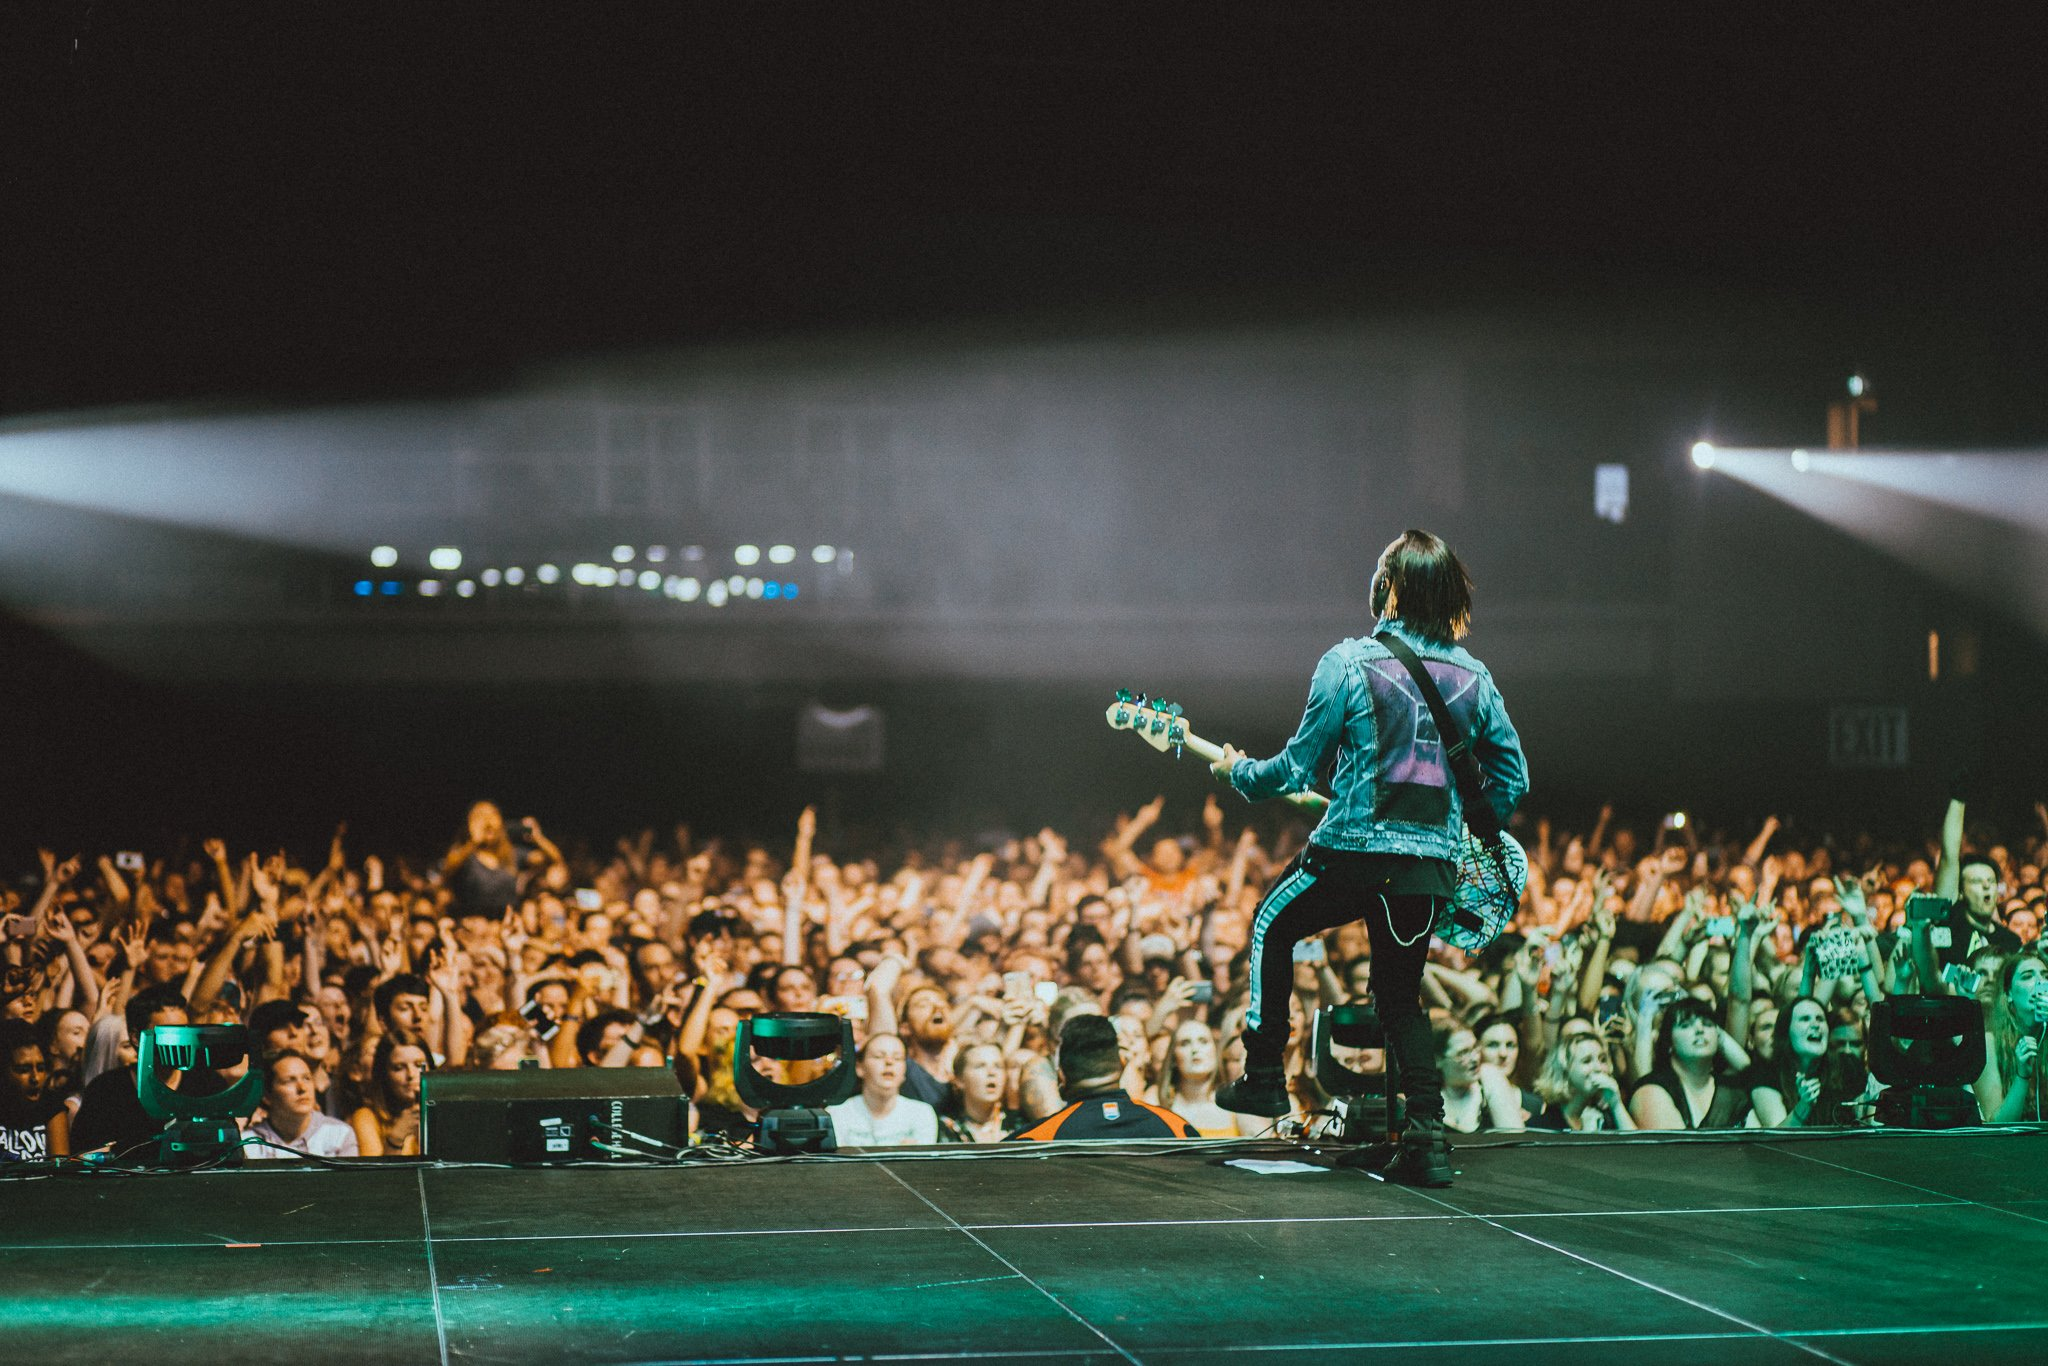 Auckland, what a way to close out our shows down under �� https://t.co/7yO2xTAzxj